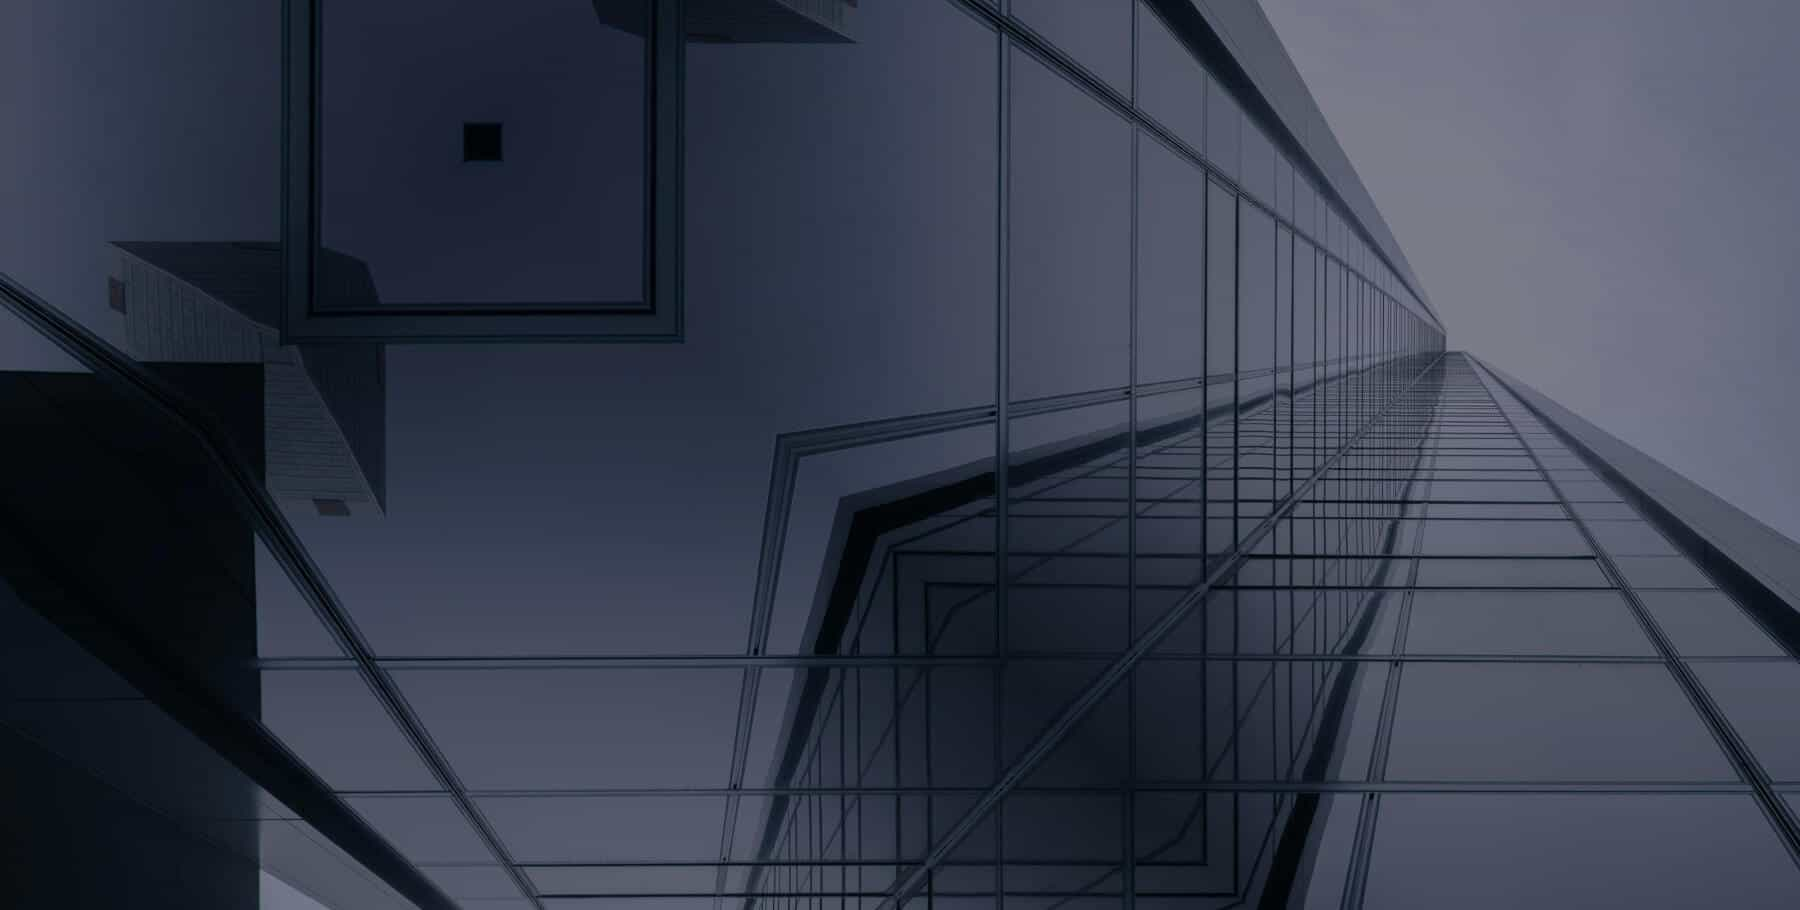 Abstract Image of a Glass Building